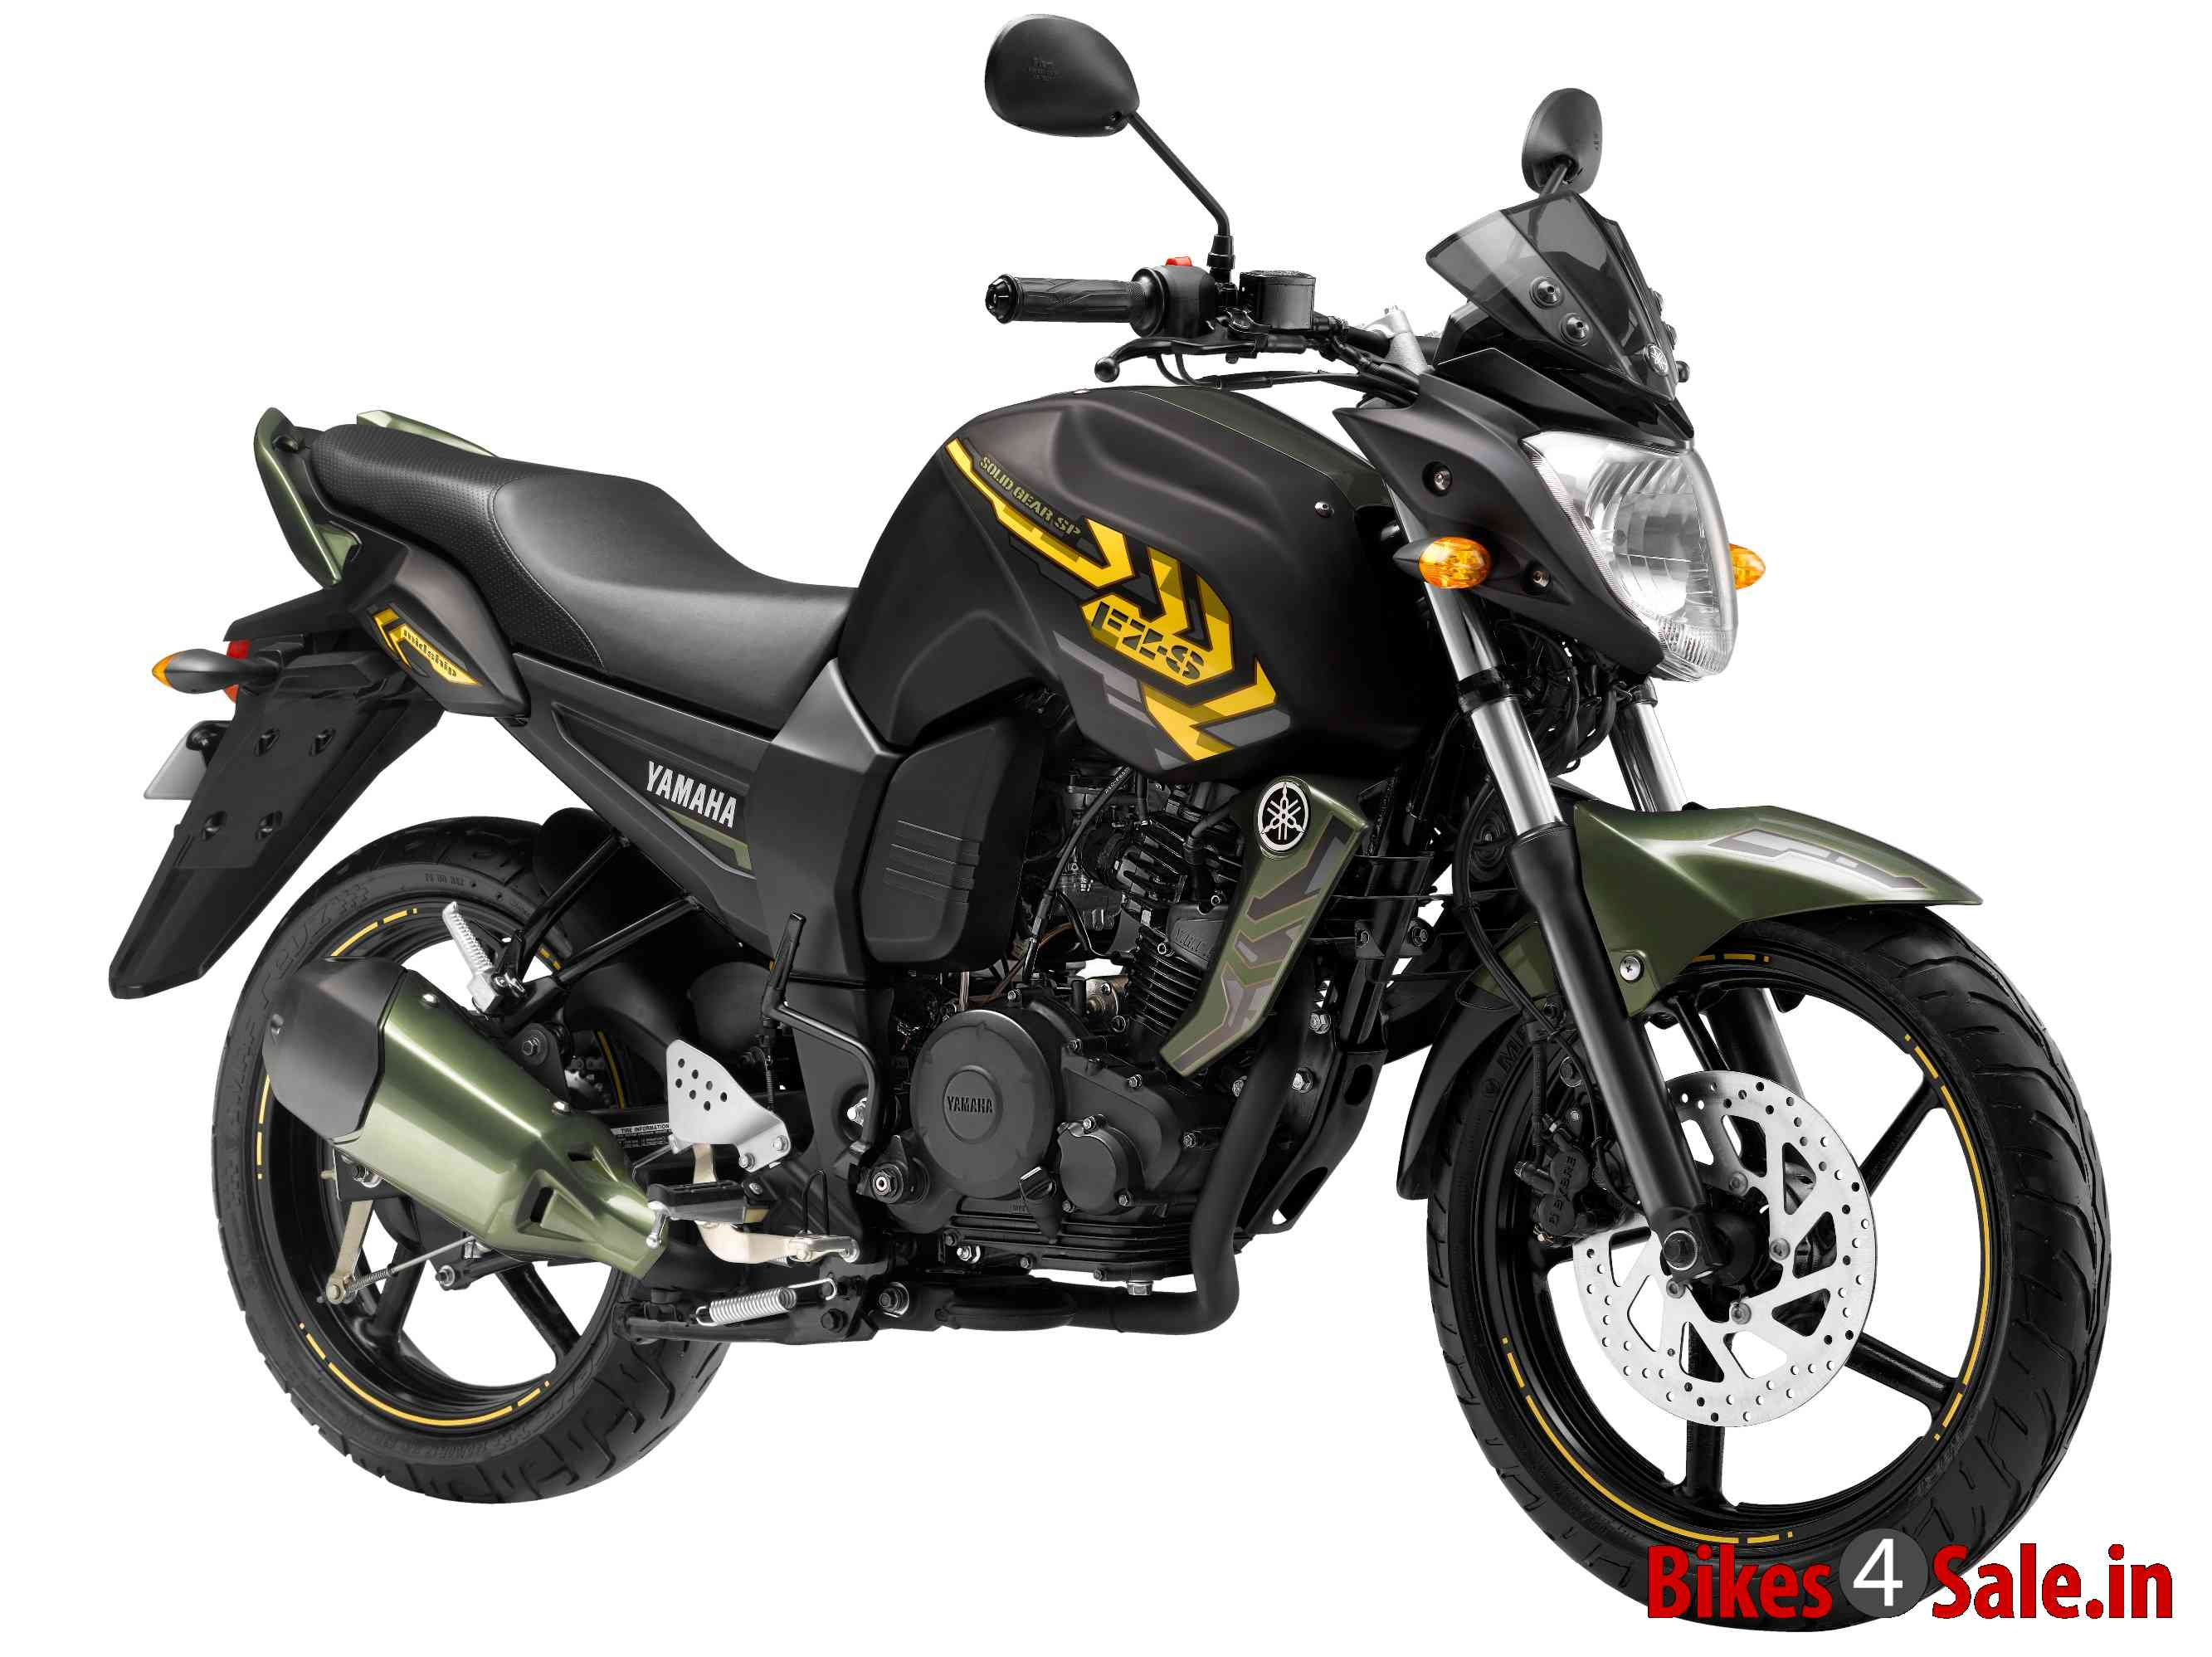 2013 Yamaha FZ-S Battle Green Special Edition